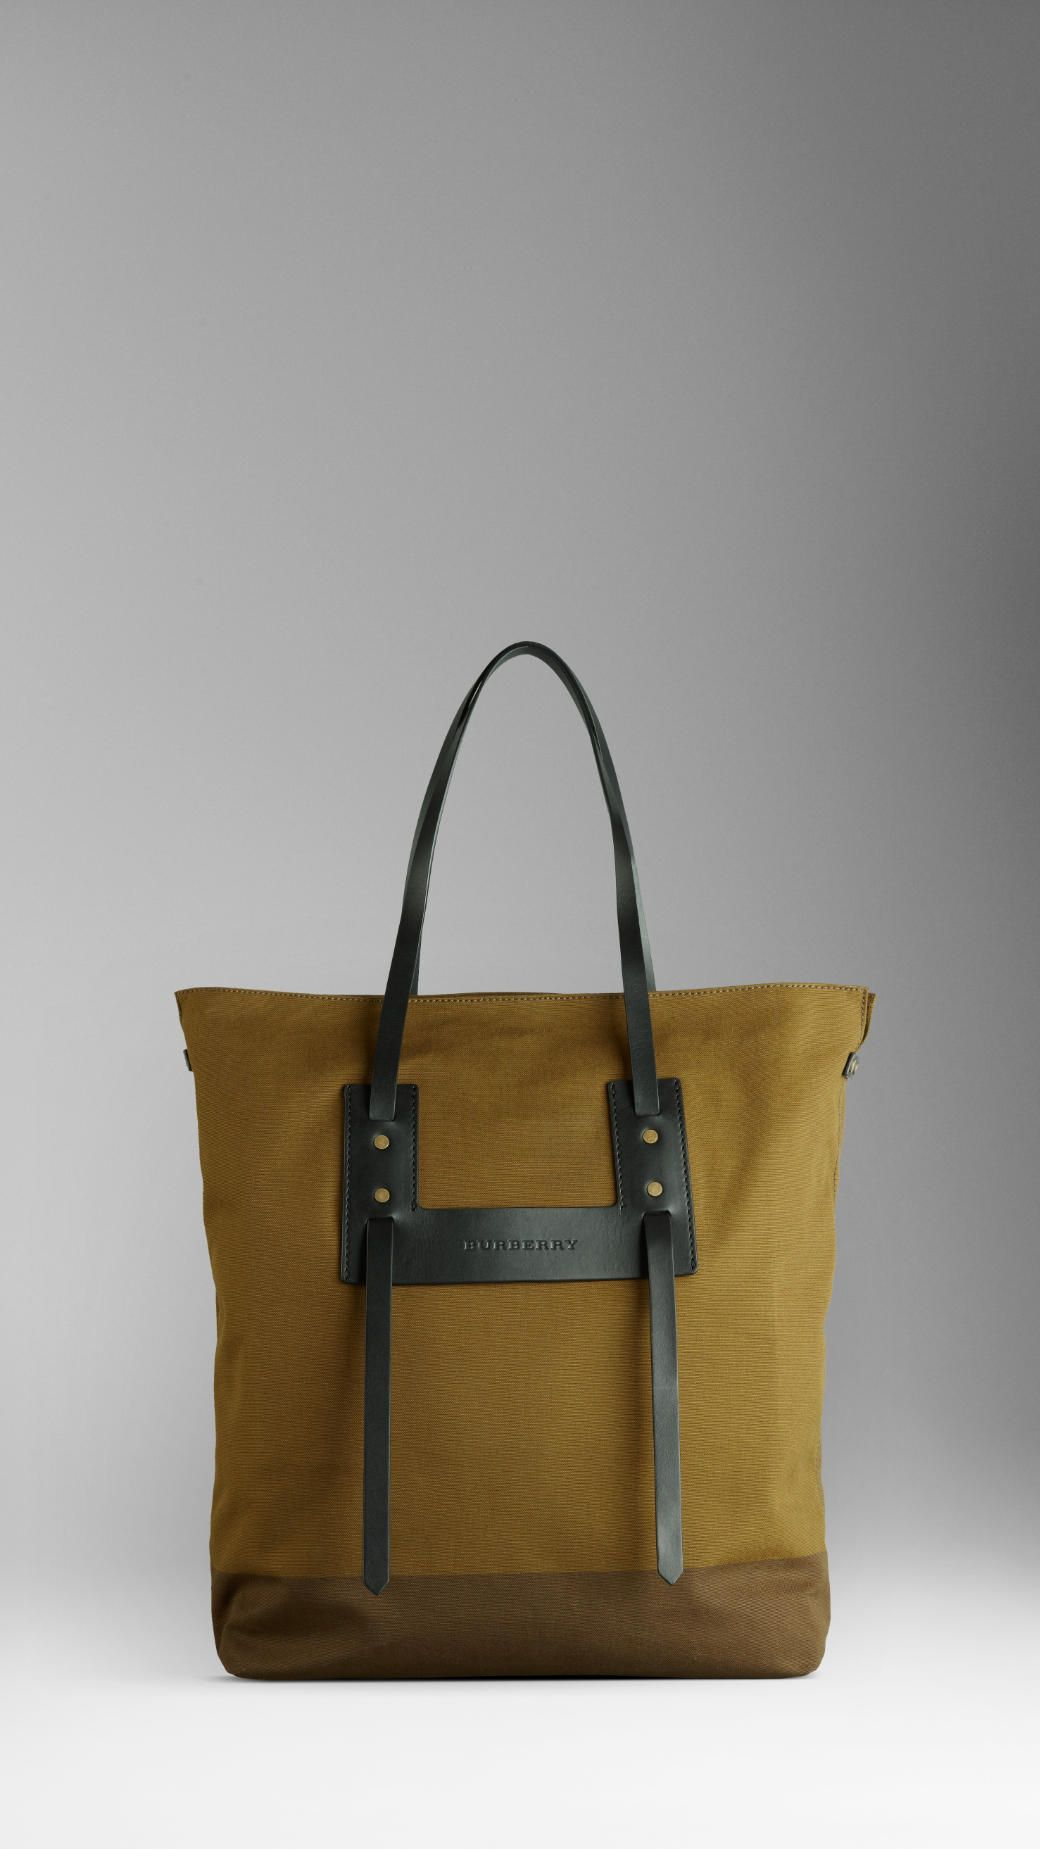 Burberry mens canvas tote bag | Bags... | Pinterest | Burberry ...